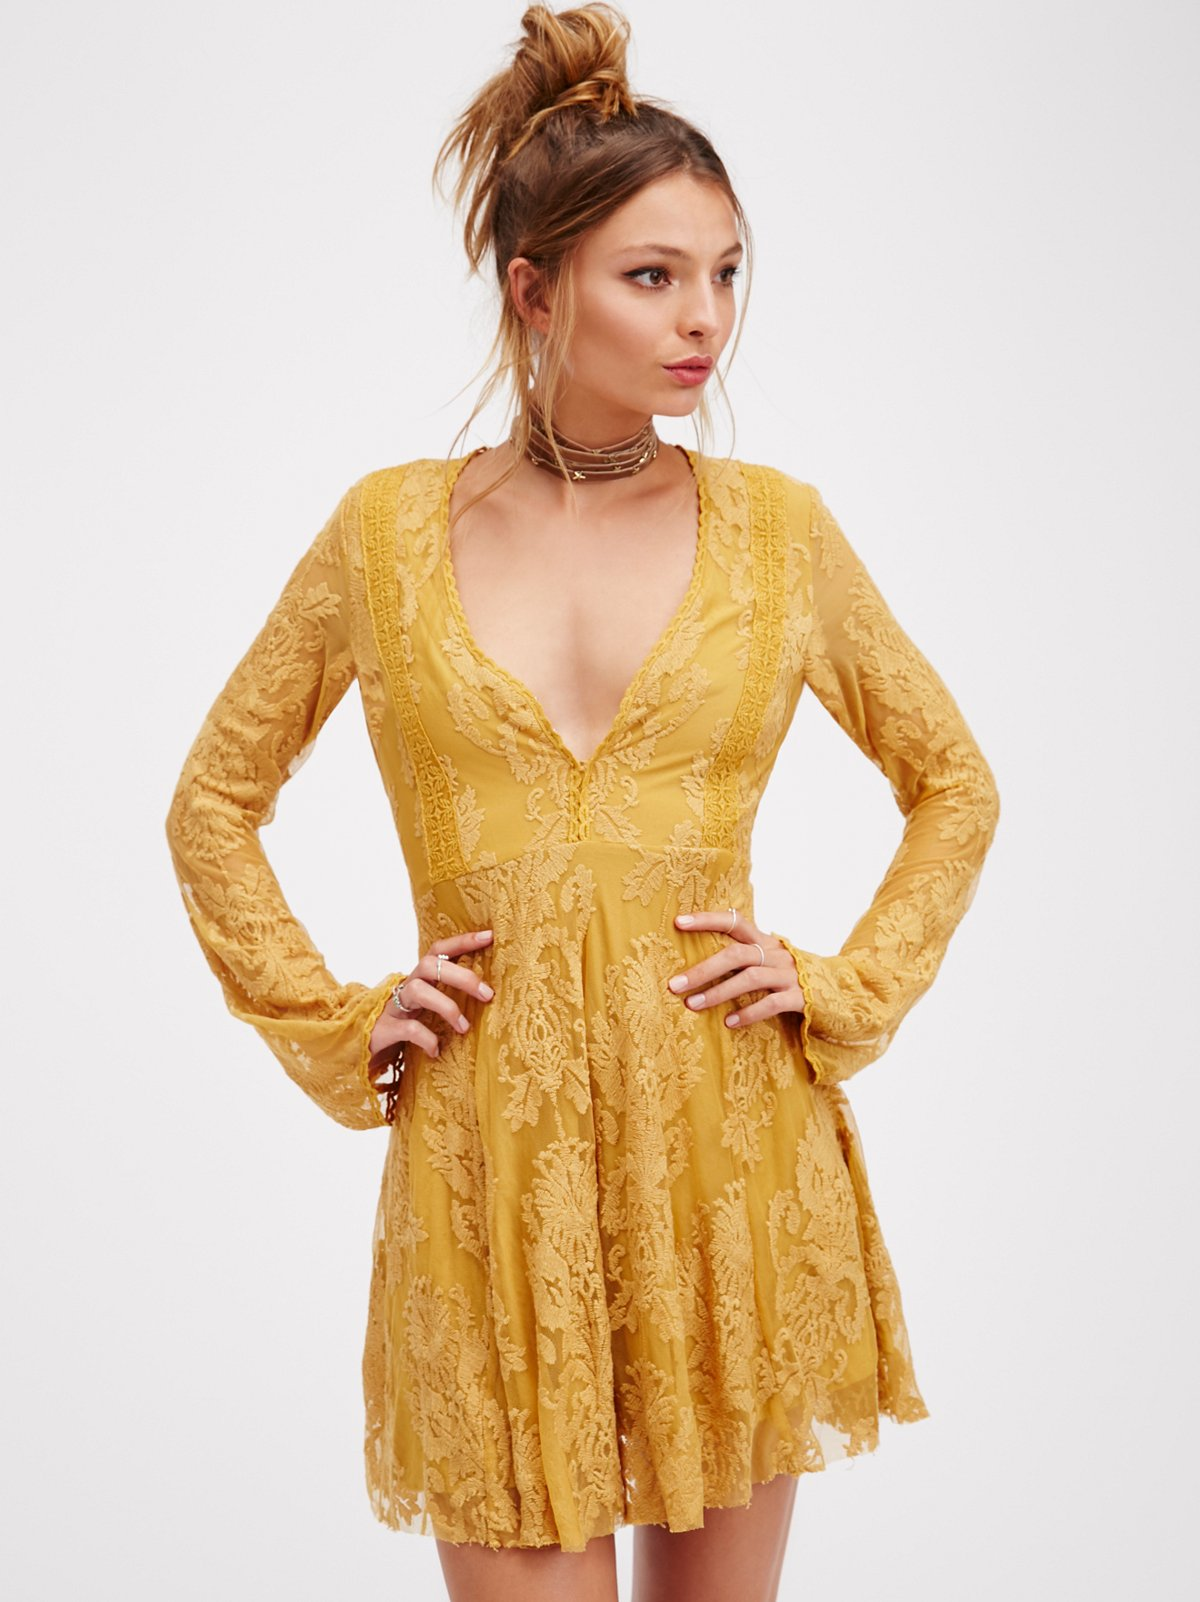 Reign Over Me Lace Dress At Free People Clothing Boutique